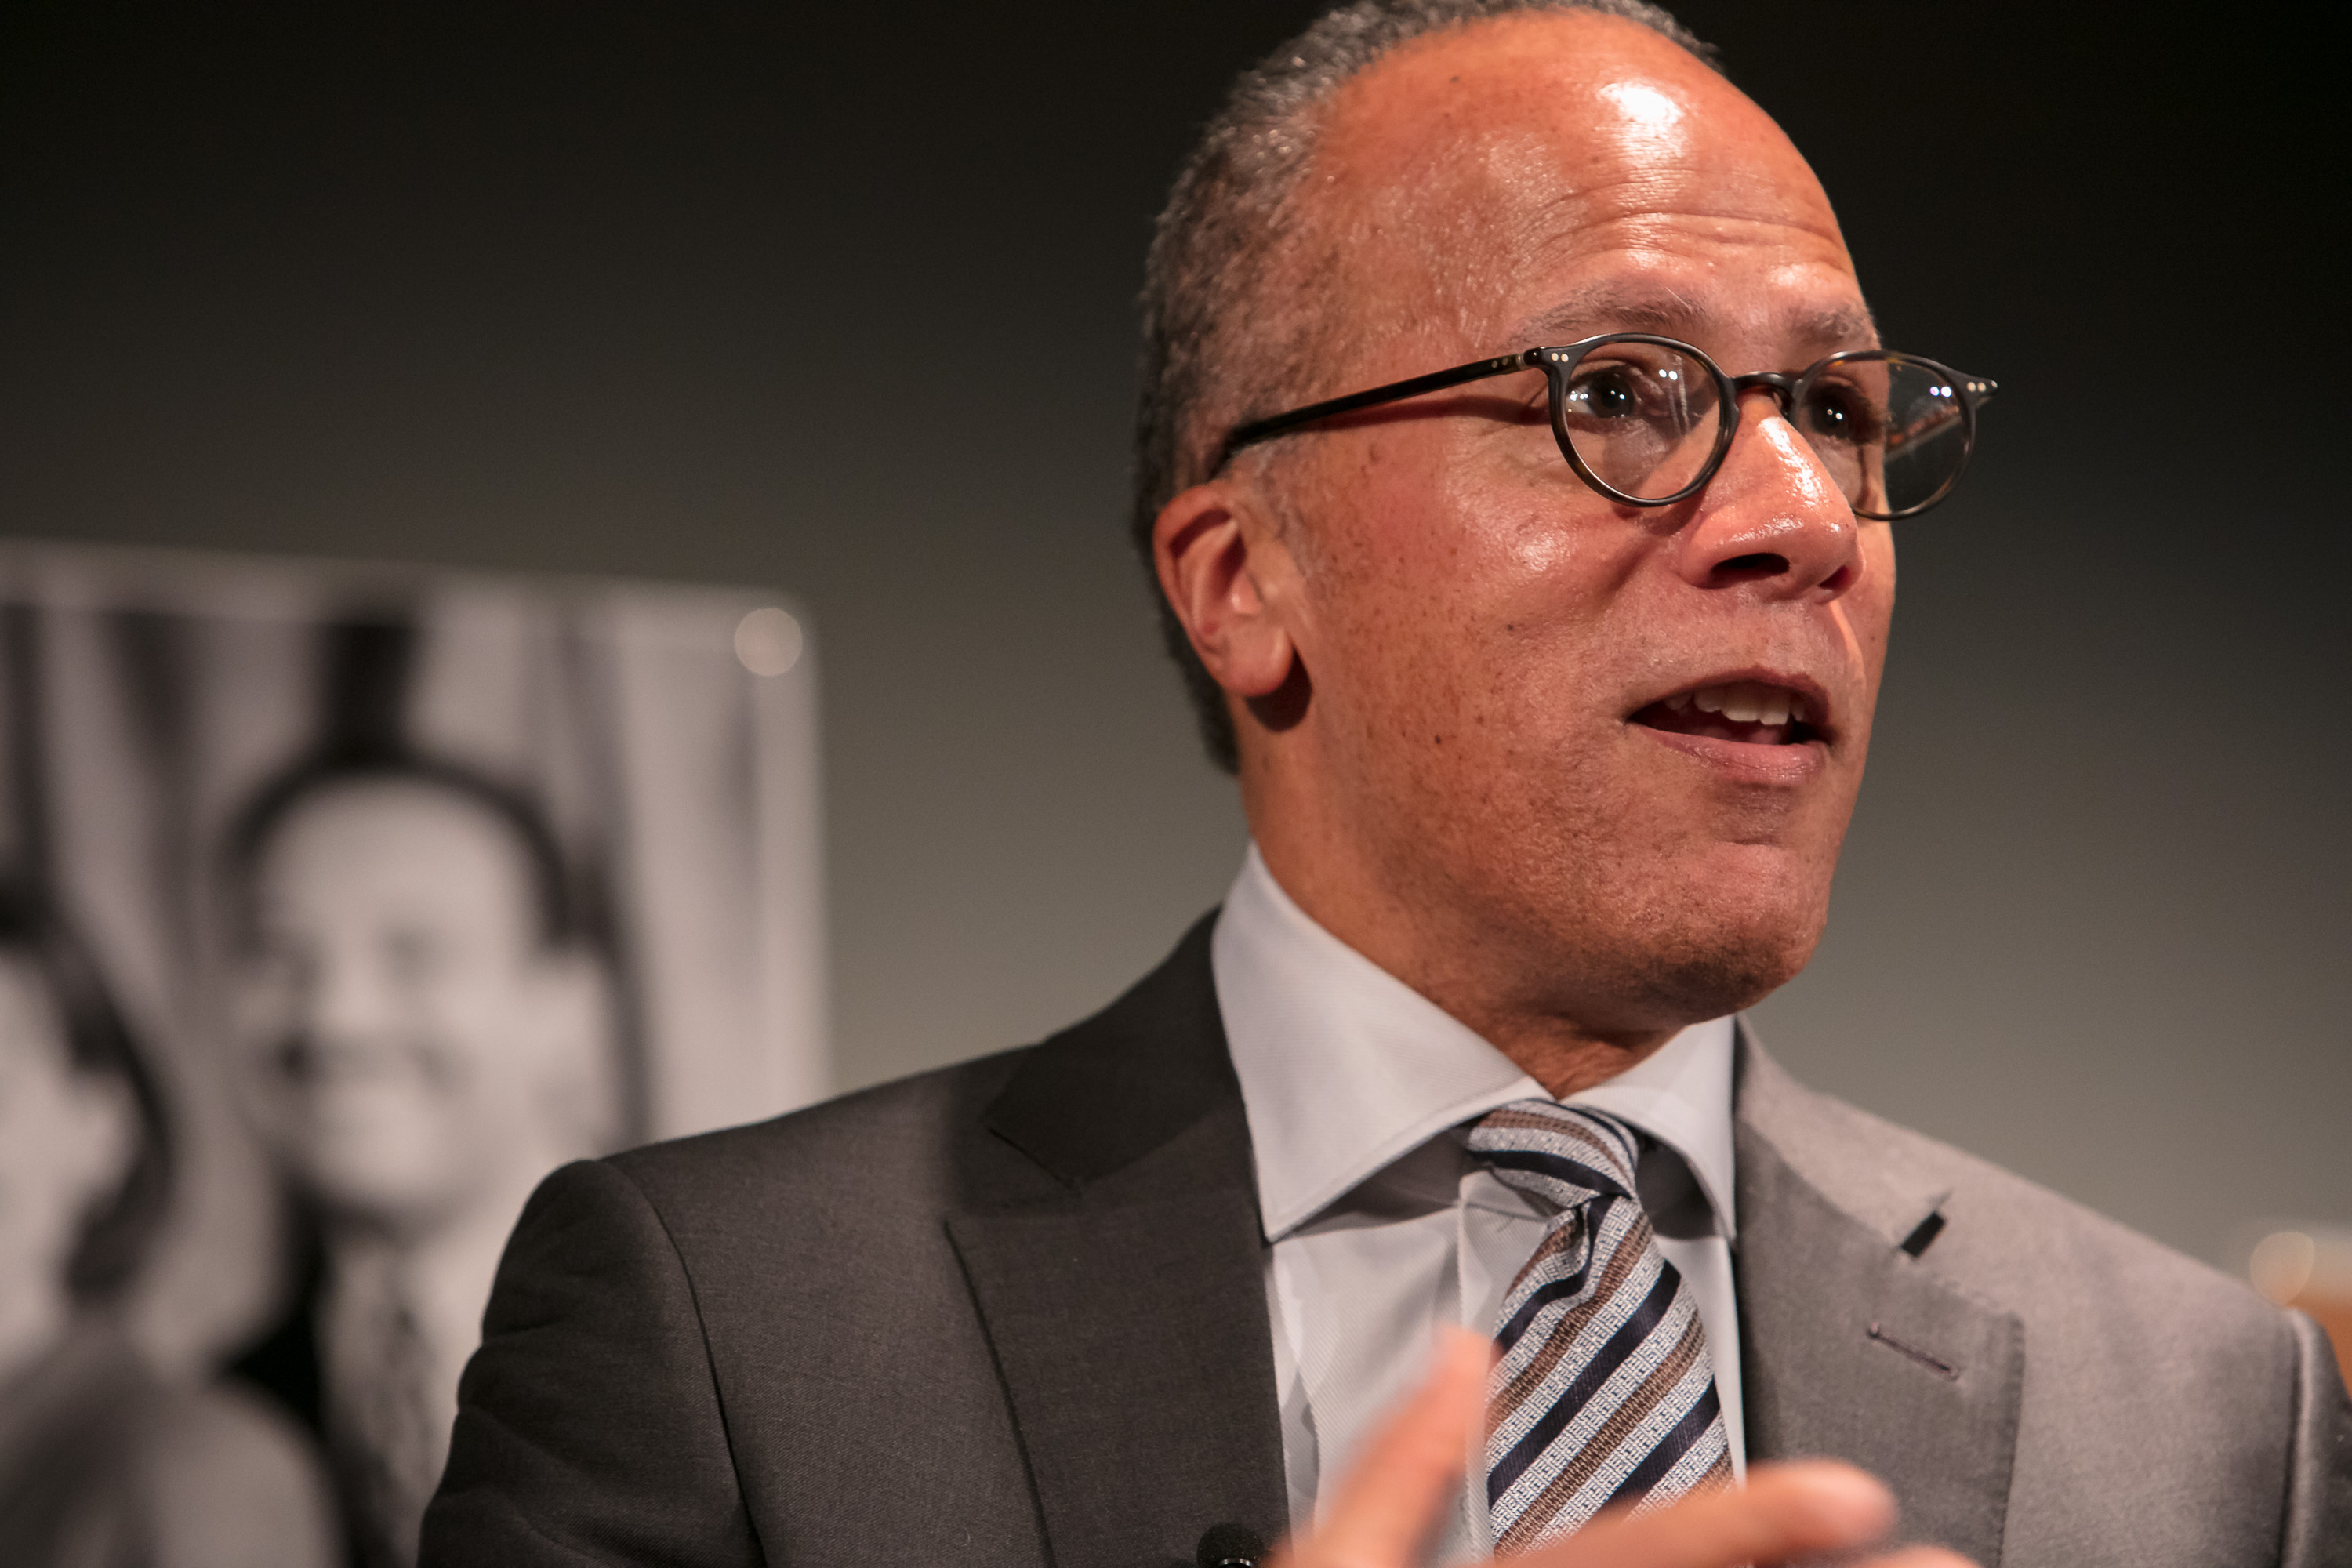 NBC Nightly News's Lester Holt